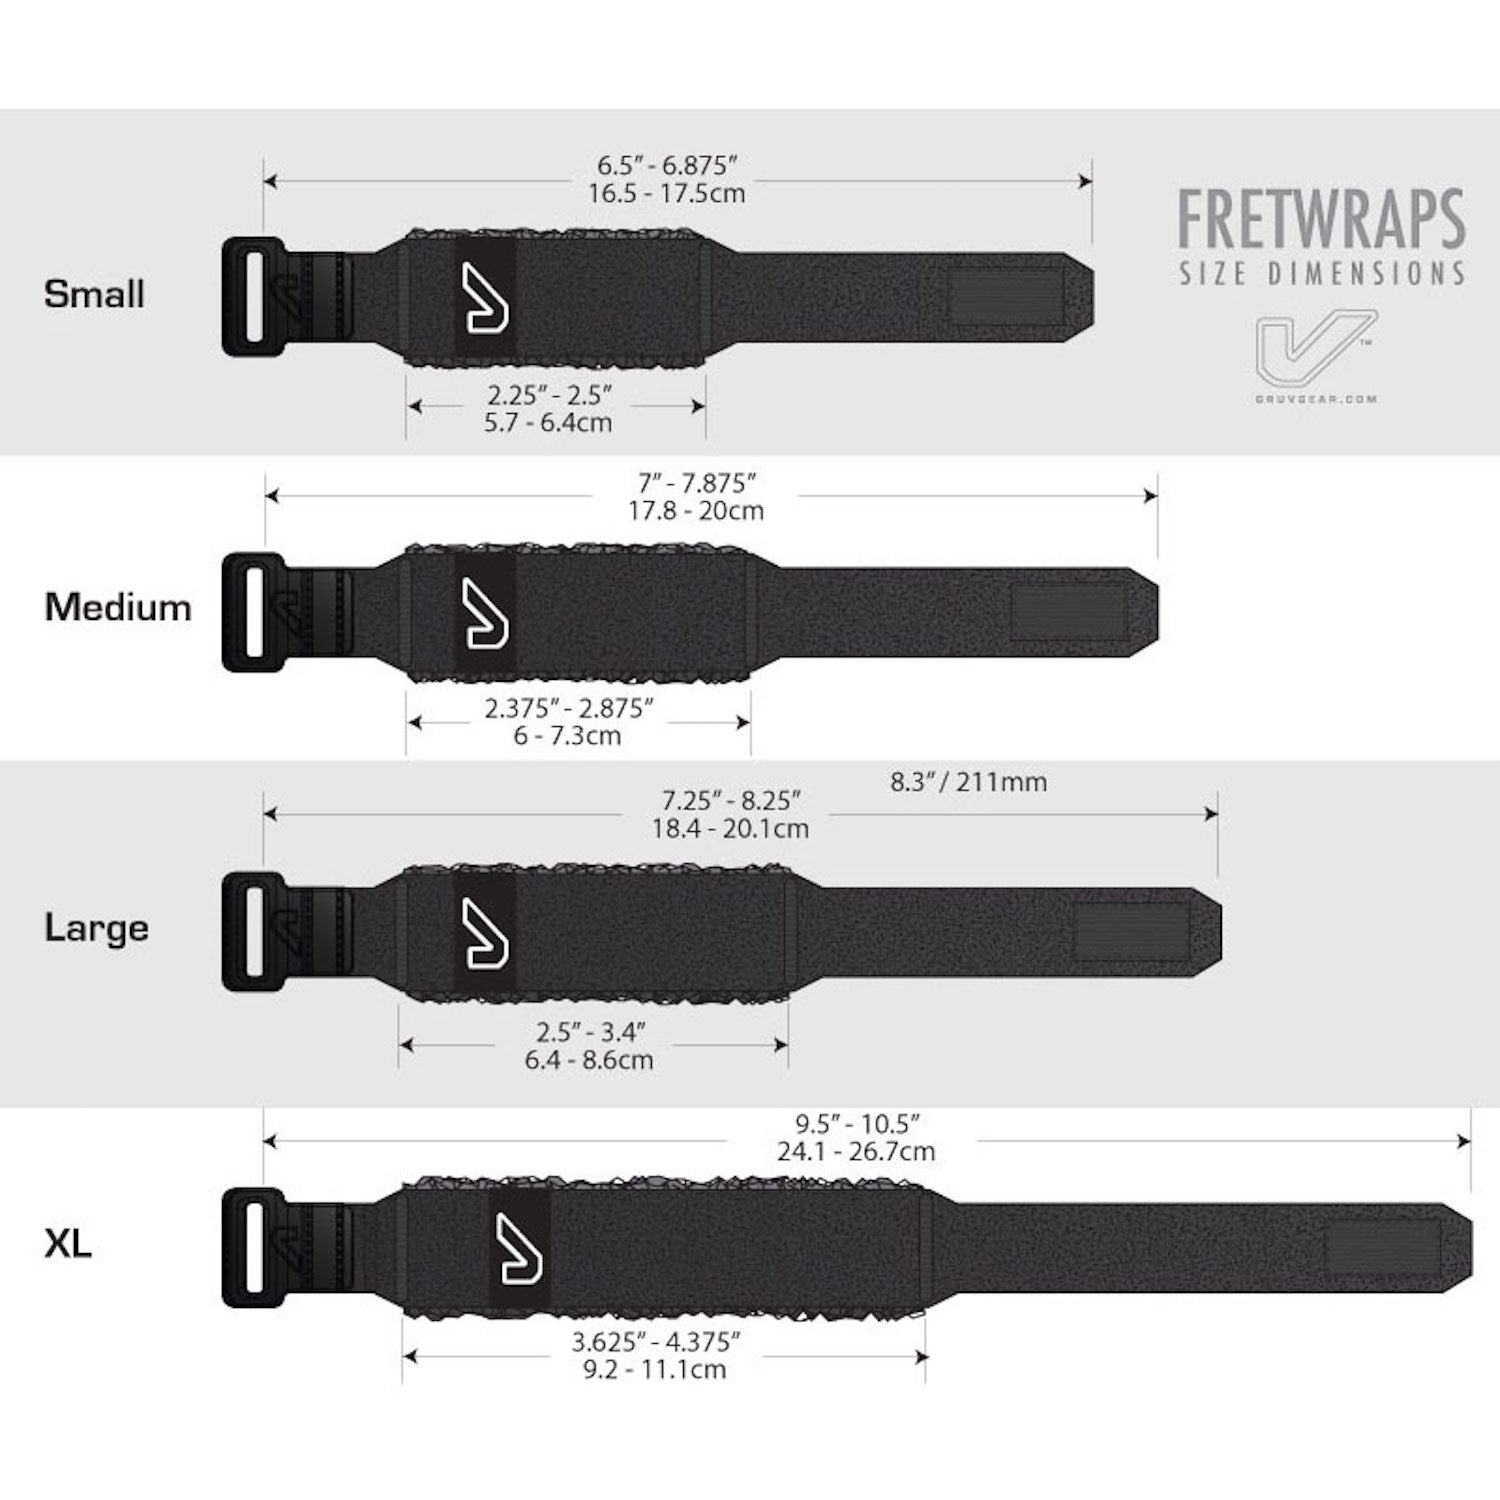 Gruvgear Fretwraps 1-Pack Black-Small